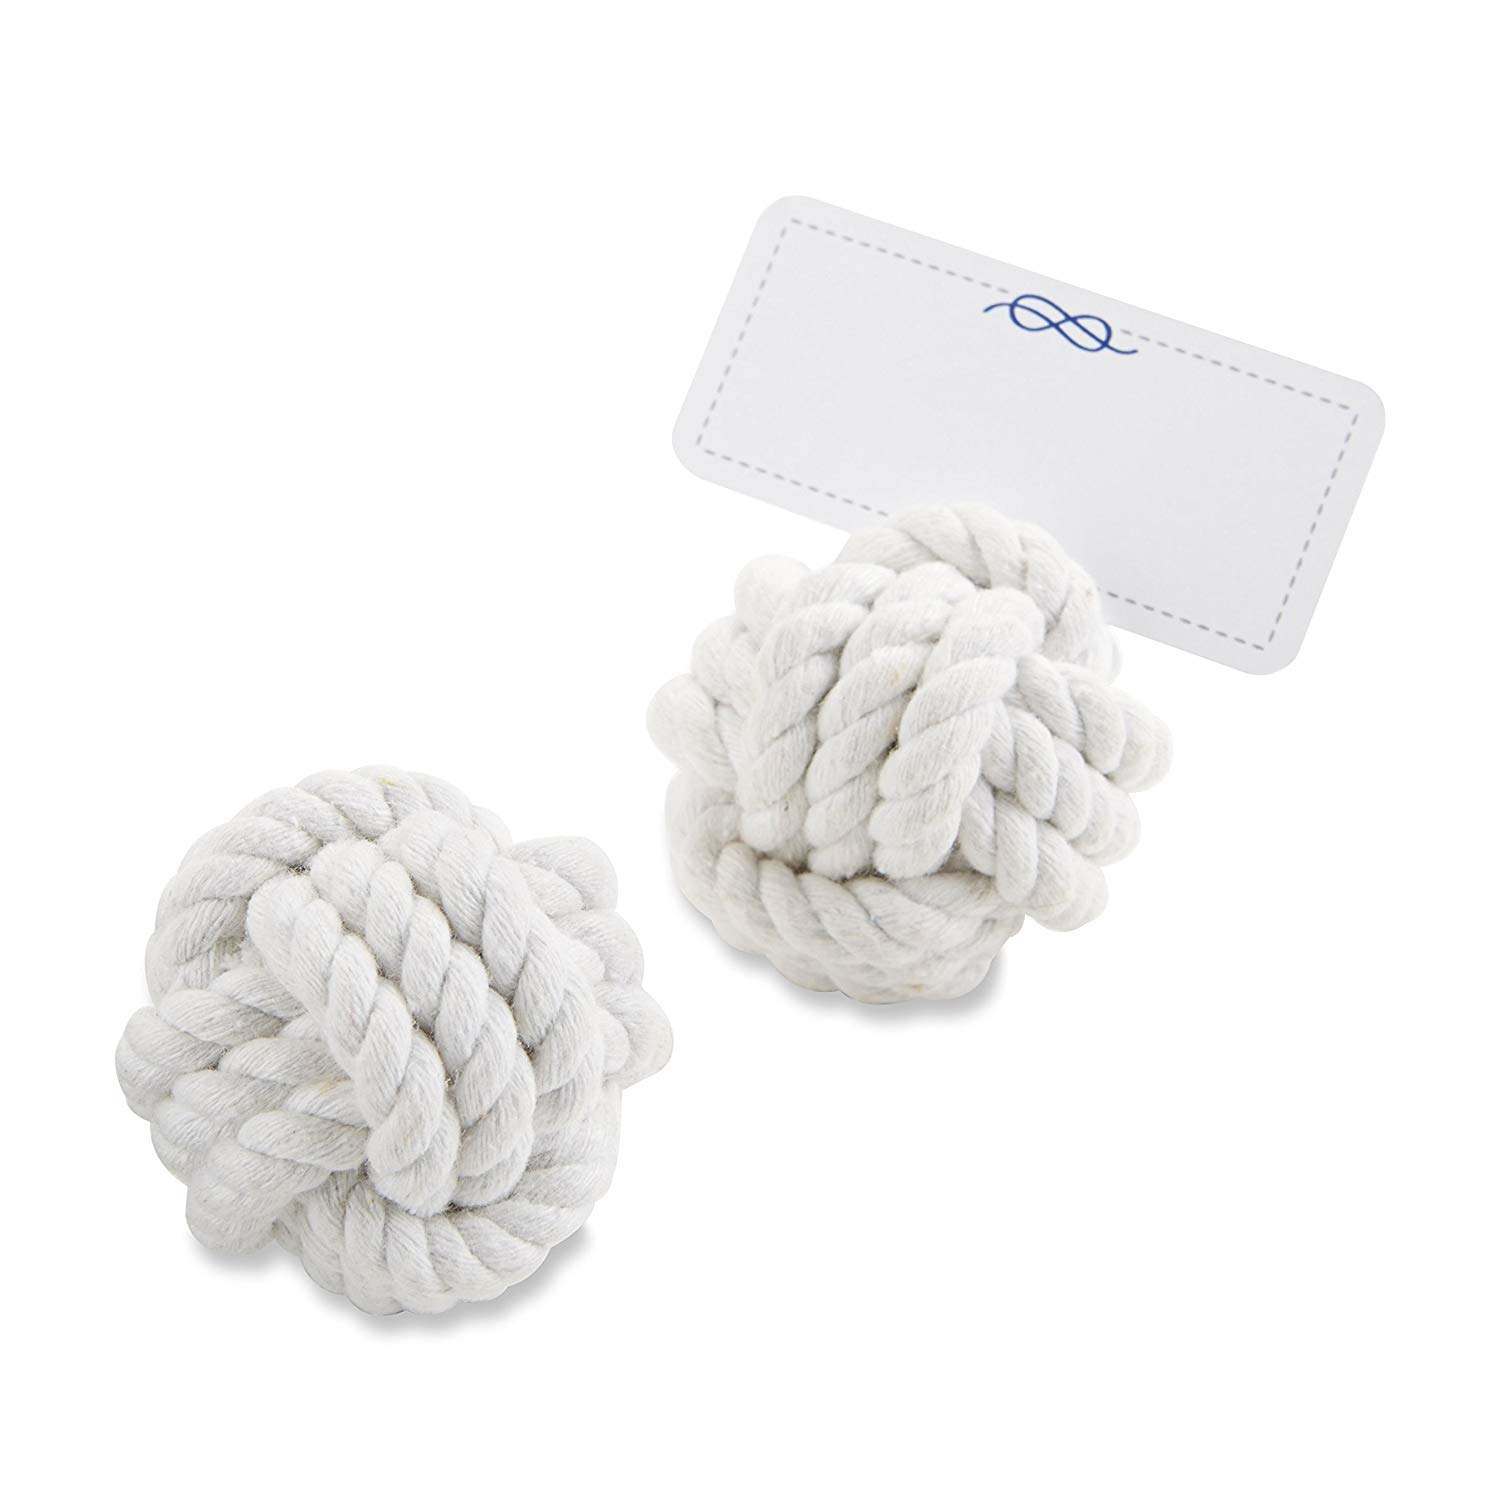 Kate Aspen 102 White Natural Cotton Nautical Cotton Rope Place Card Photo Holder Wedding Thank-You Gifts Baby Bridal Shower Table Décor Decorations Party Souvenir Favors